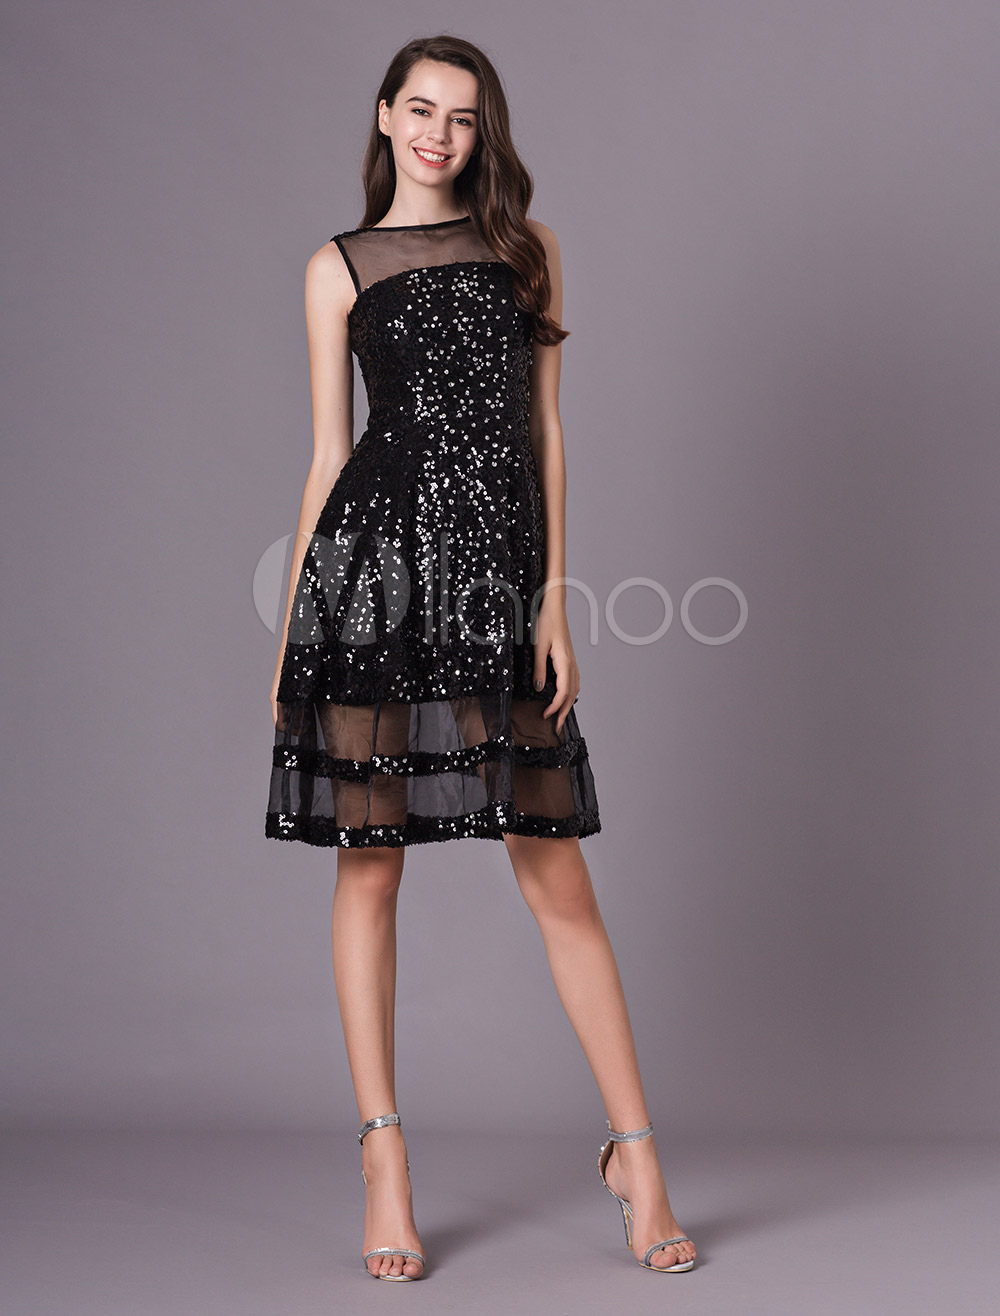 5e21cd723ef Wedding Guest Dress Black Sequin Illusion Short Cocktail Party Dress-No.1  ...